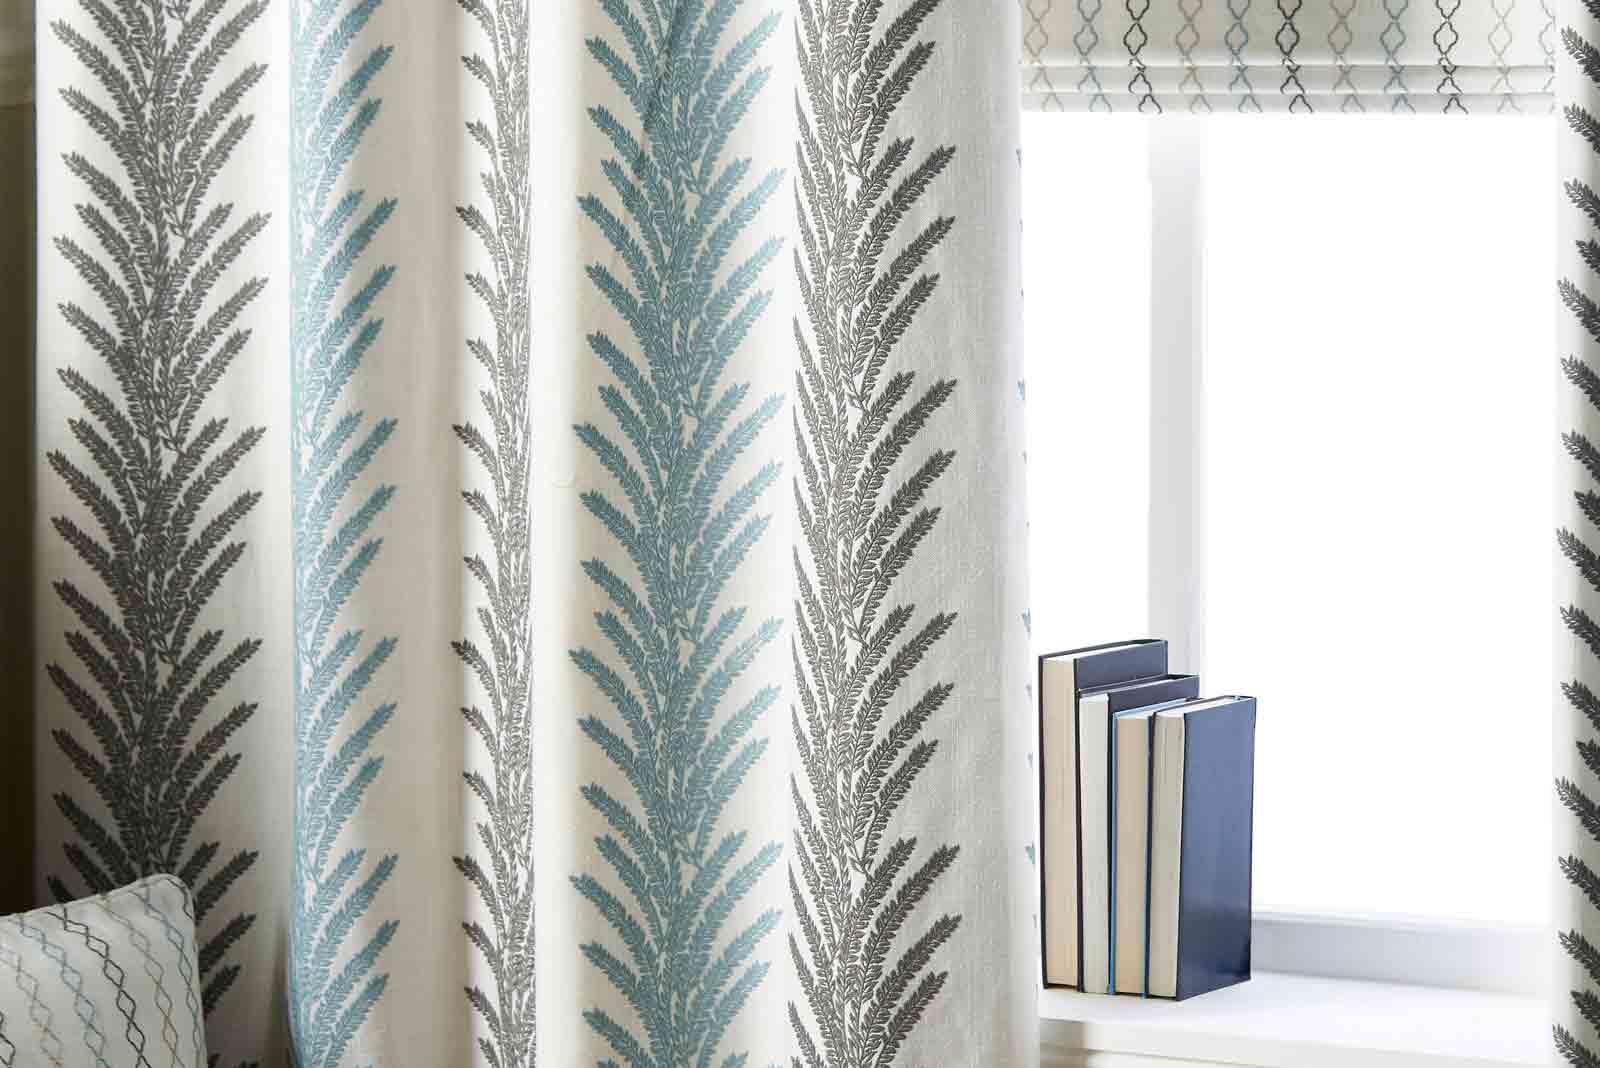 Curtains in living room space.